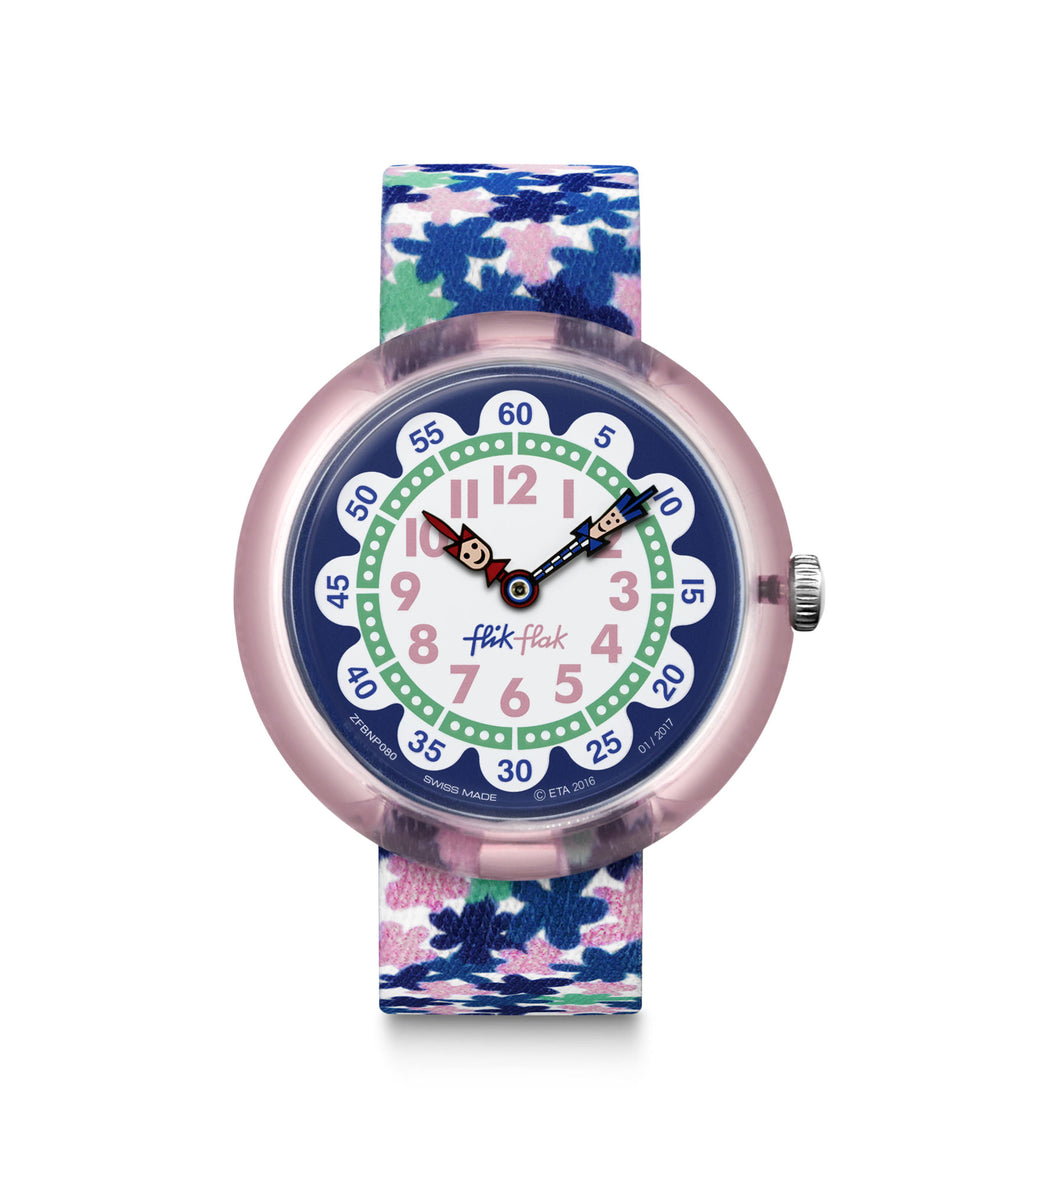 Swatch Flik Flak London Flower FBNP080